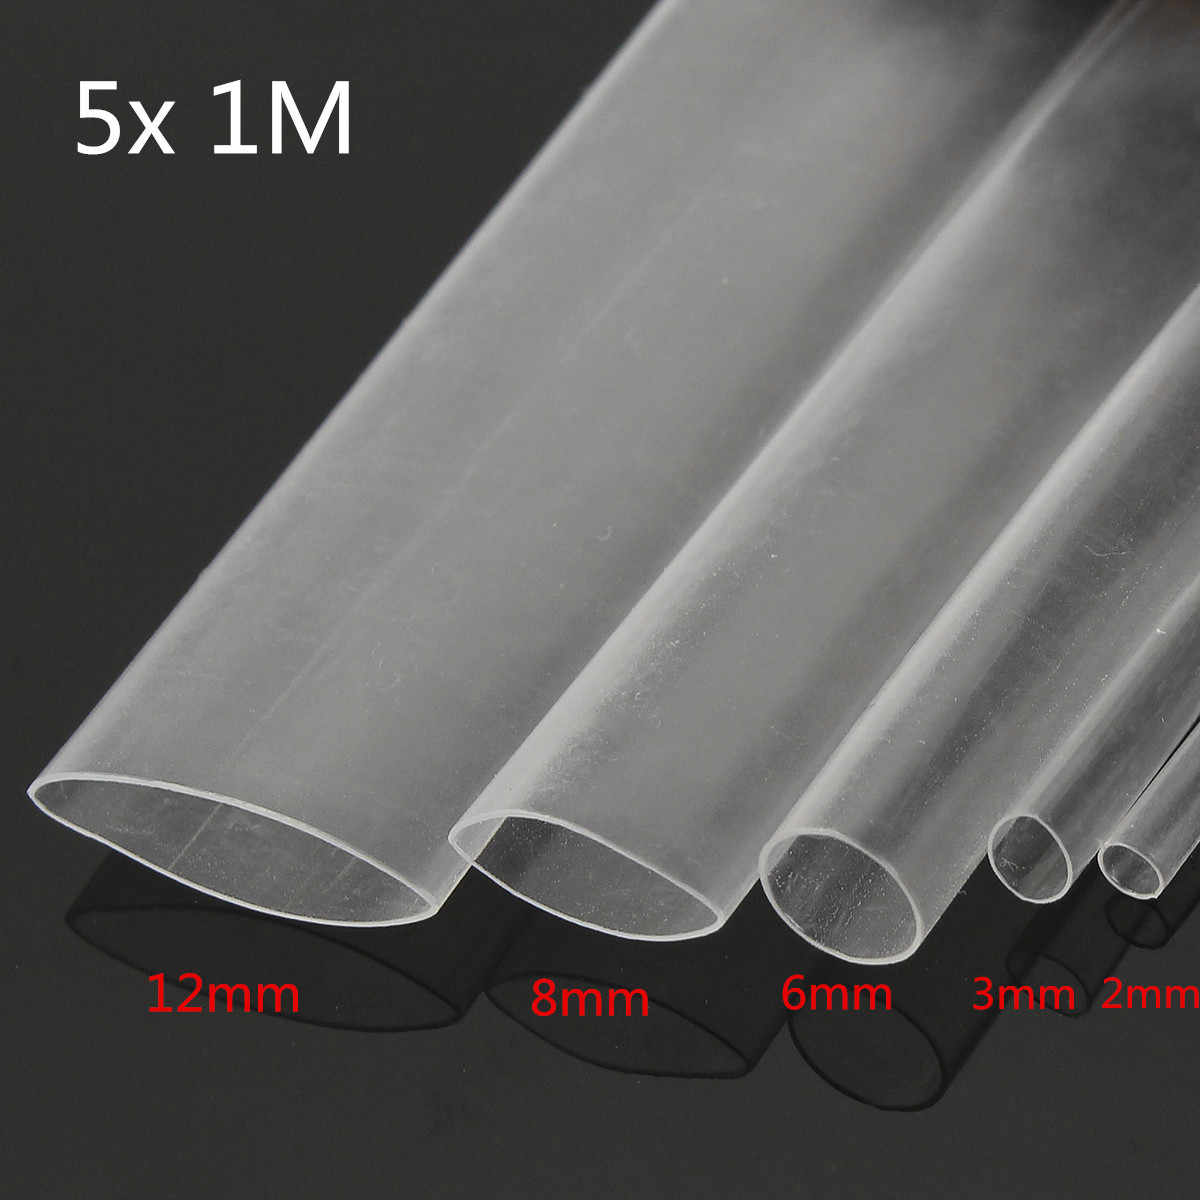 5 pièces 1 M Transparent 2:1 thermorétractable tube Transparent câble fil gainer Wrap 2.0/3.0/6.0/8.0/12.0mm